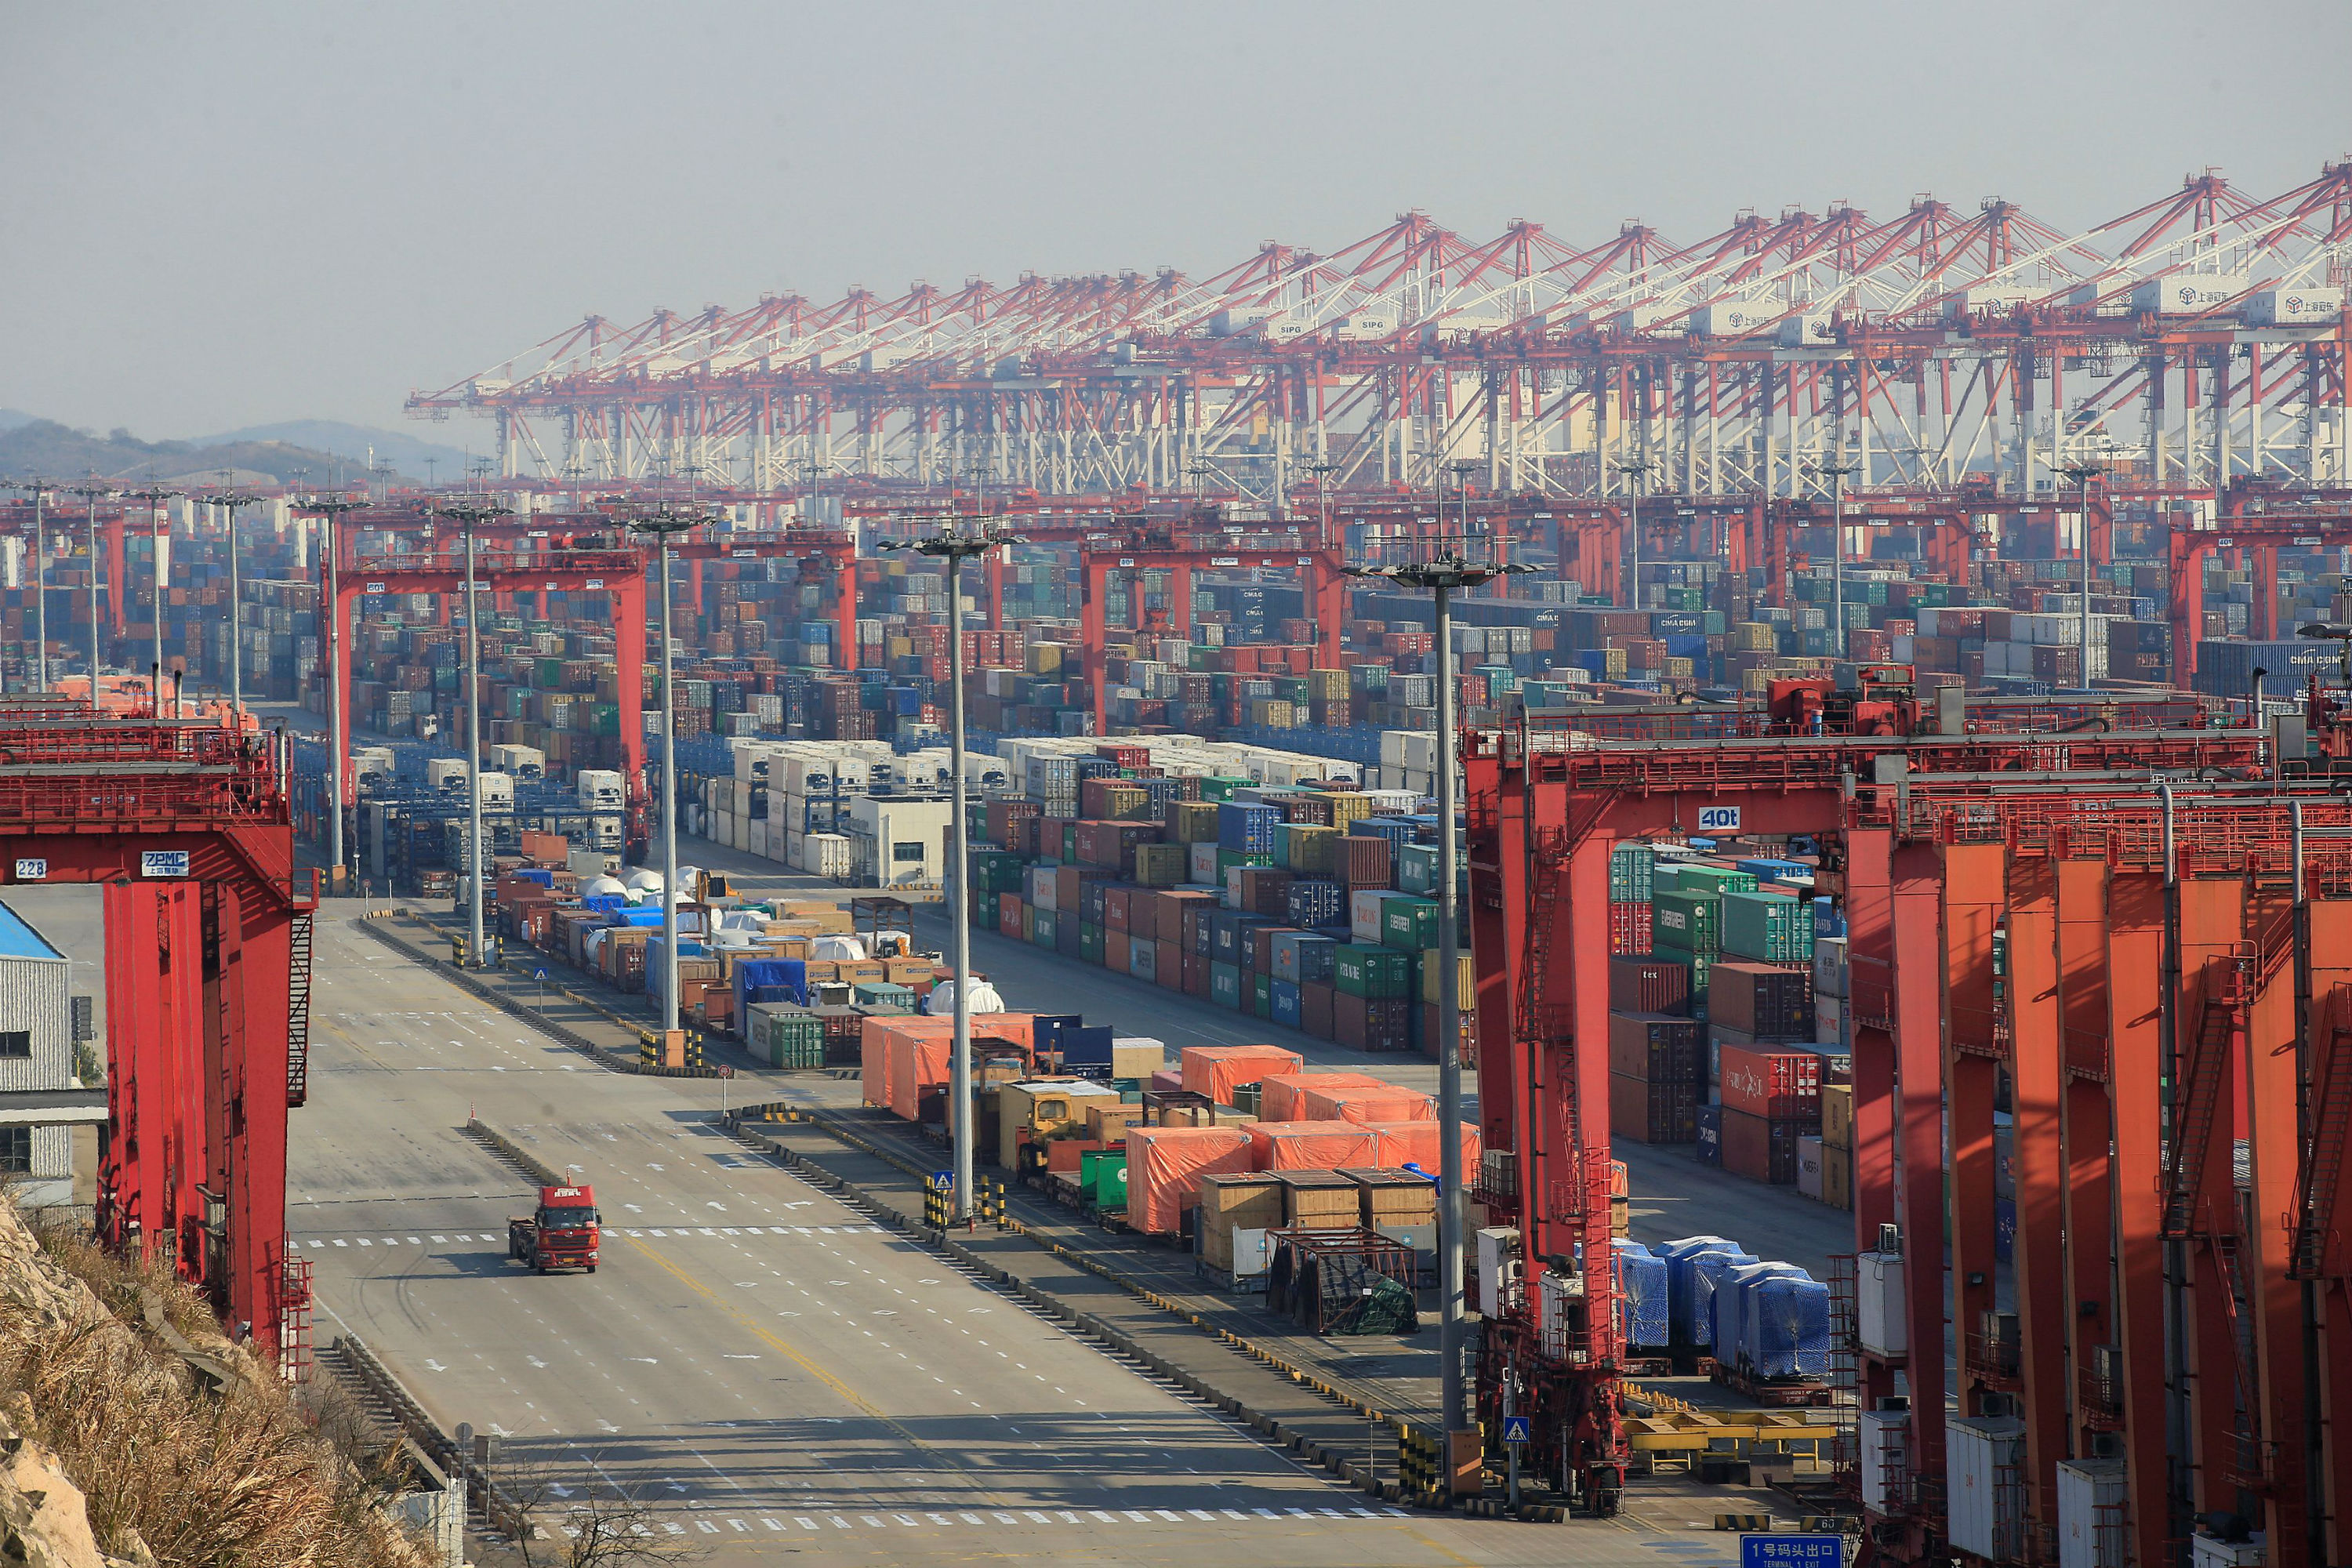 Beijing to Buy $200 Billion in US Goods as Part of Initial US-China Trade Deal